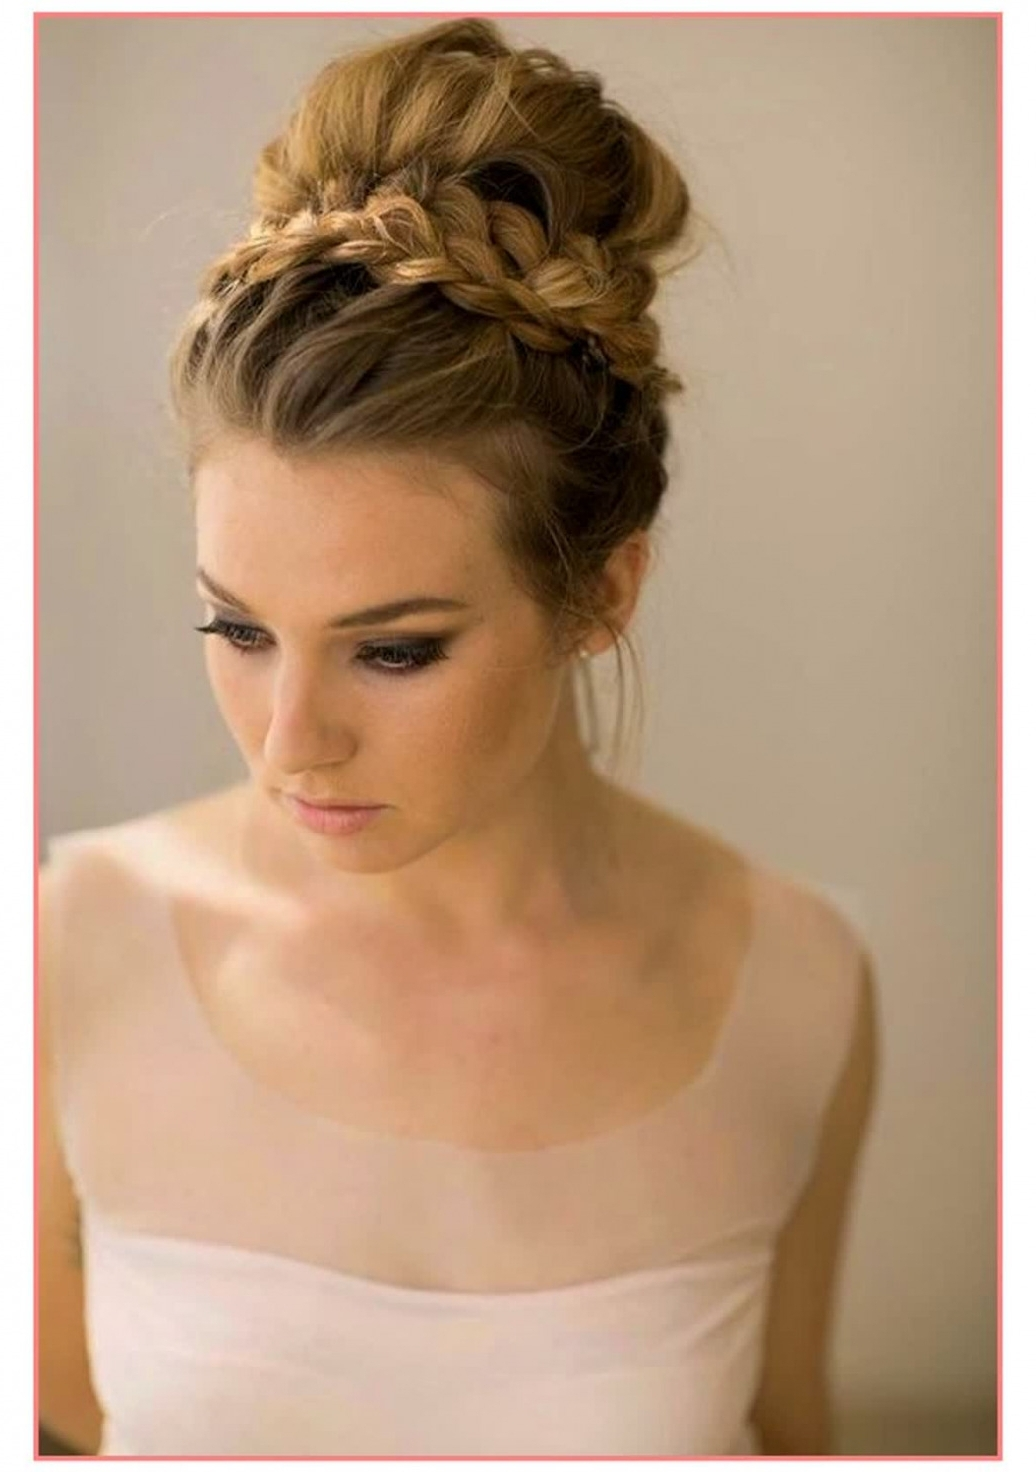 Wedding Hair : Top Hairstyles For A Wedding Guest With Short Hair Throughout 2017 Wedding Hairstyles For Guests (View 10 of 15)